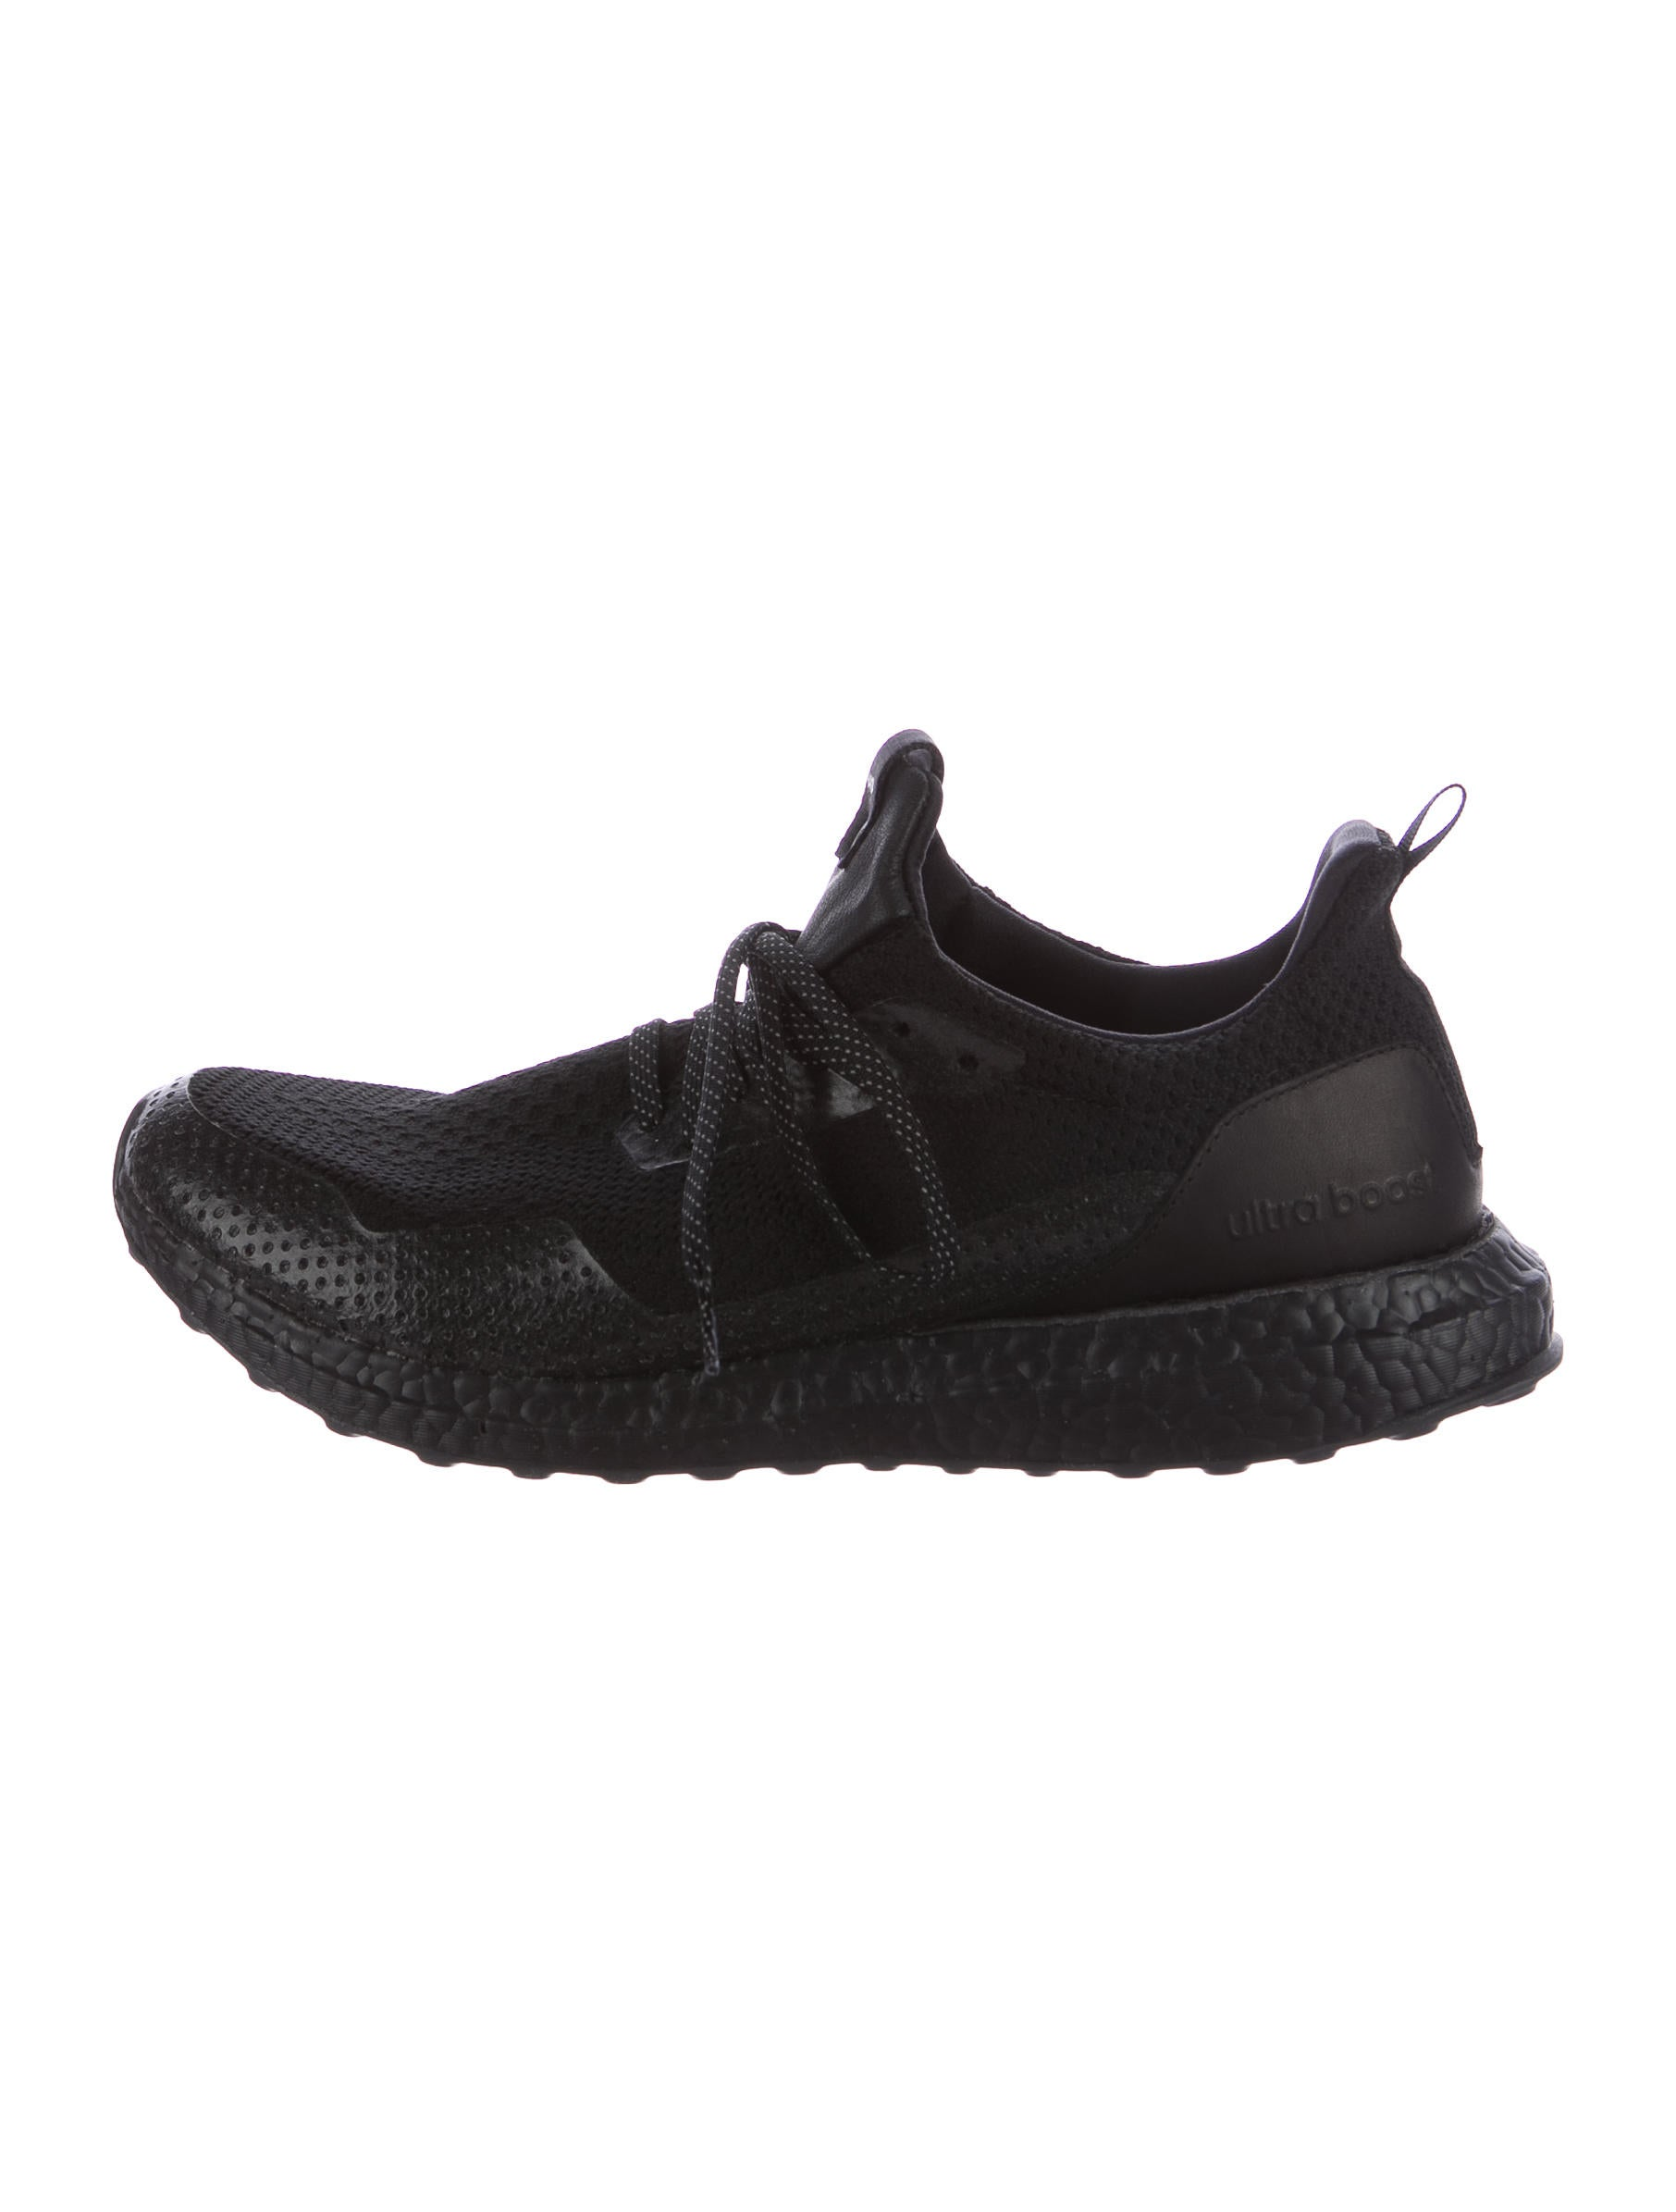 adidas ultra boost uncaged sneakers w tags shoes. Black Bedroom Furniture Sets. Home Design Ideas